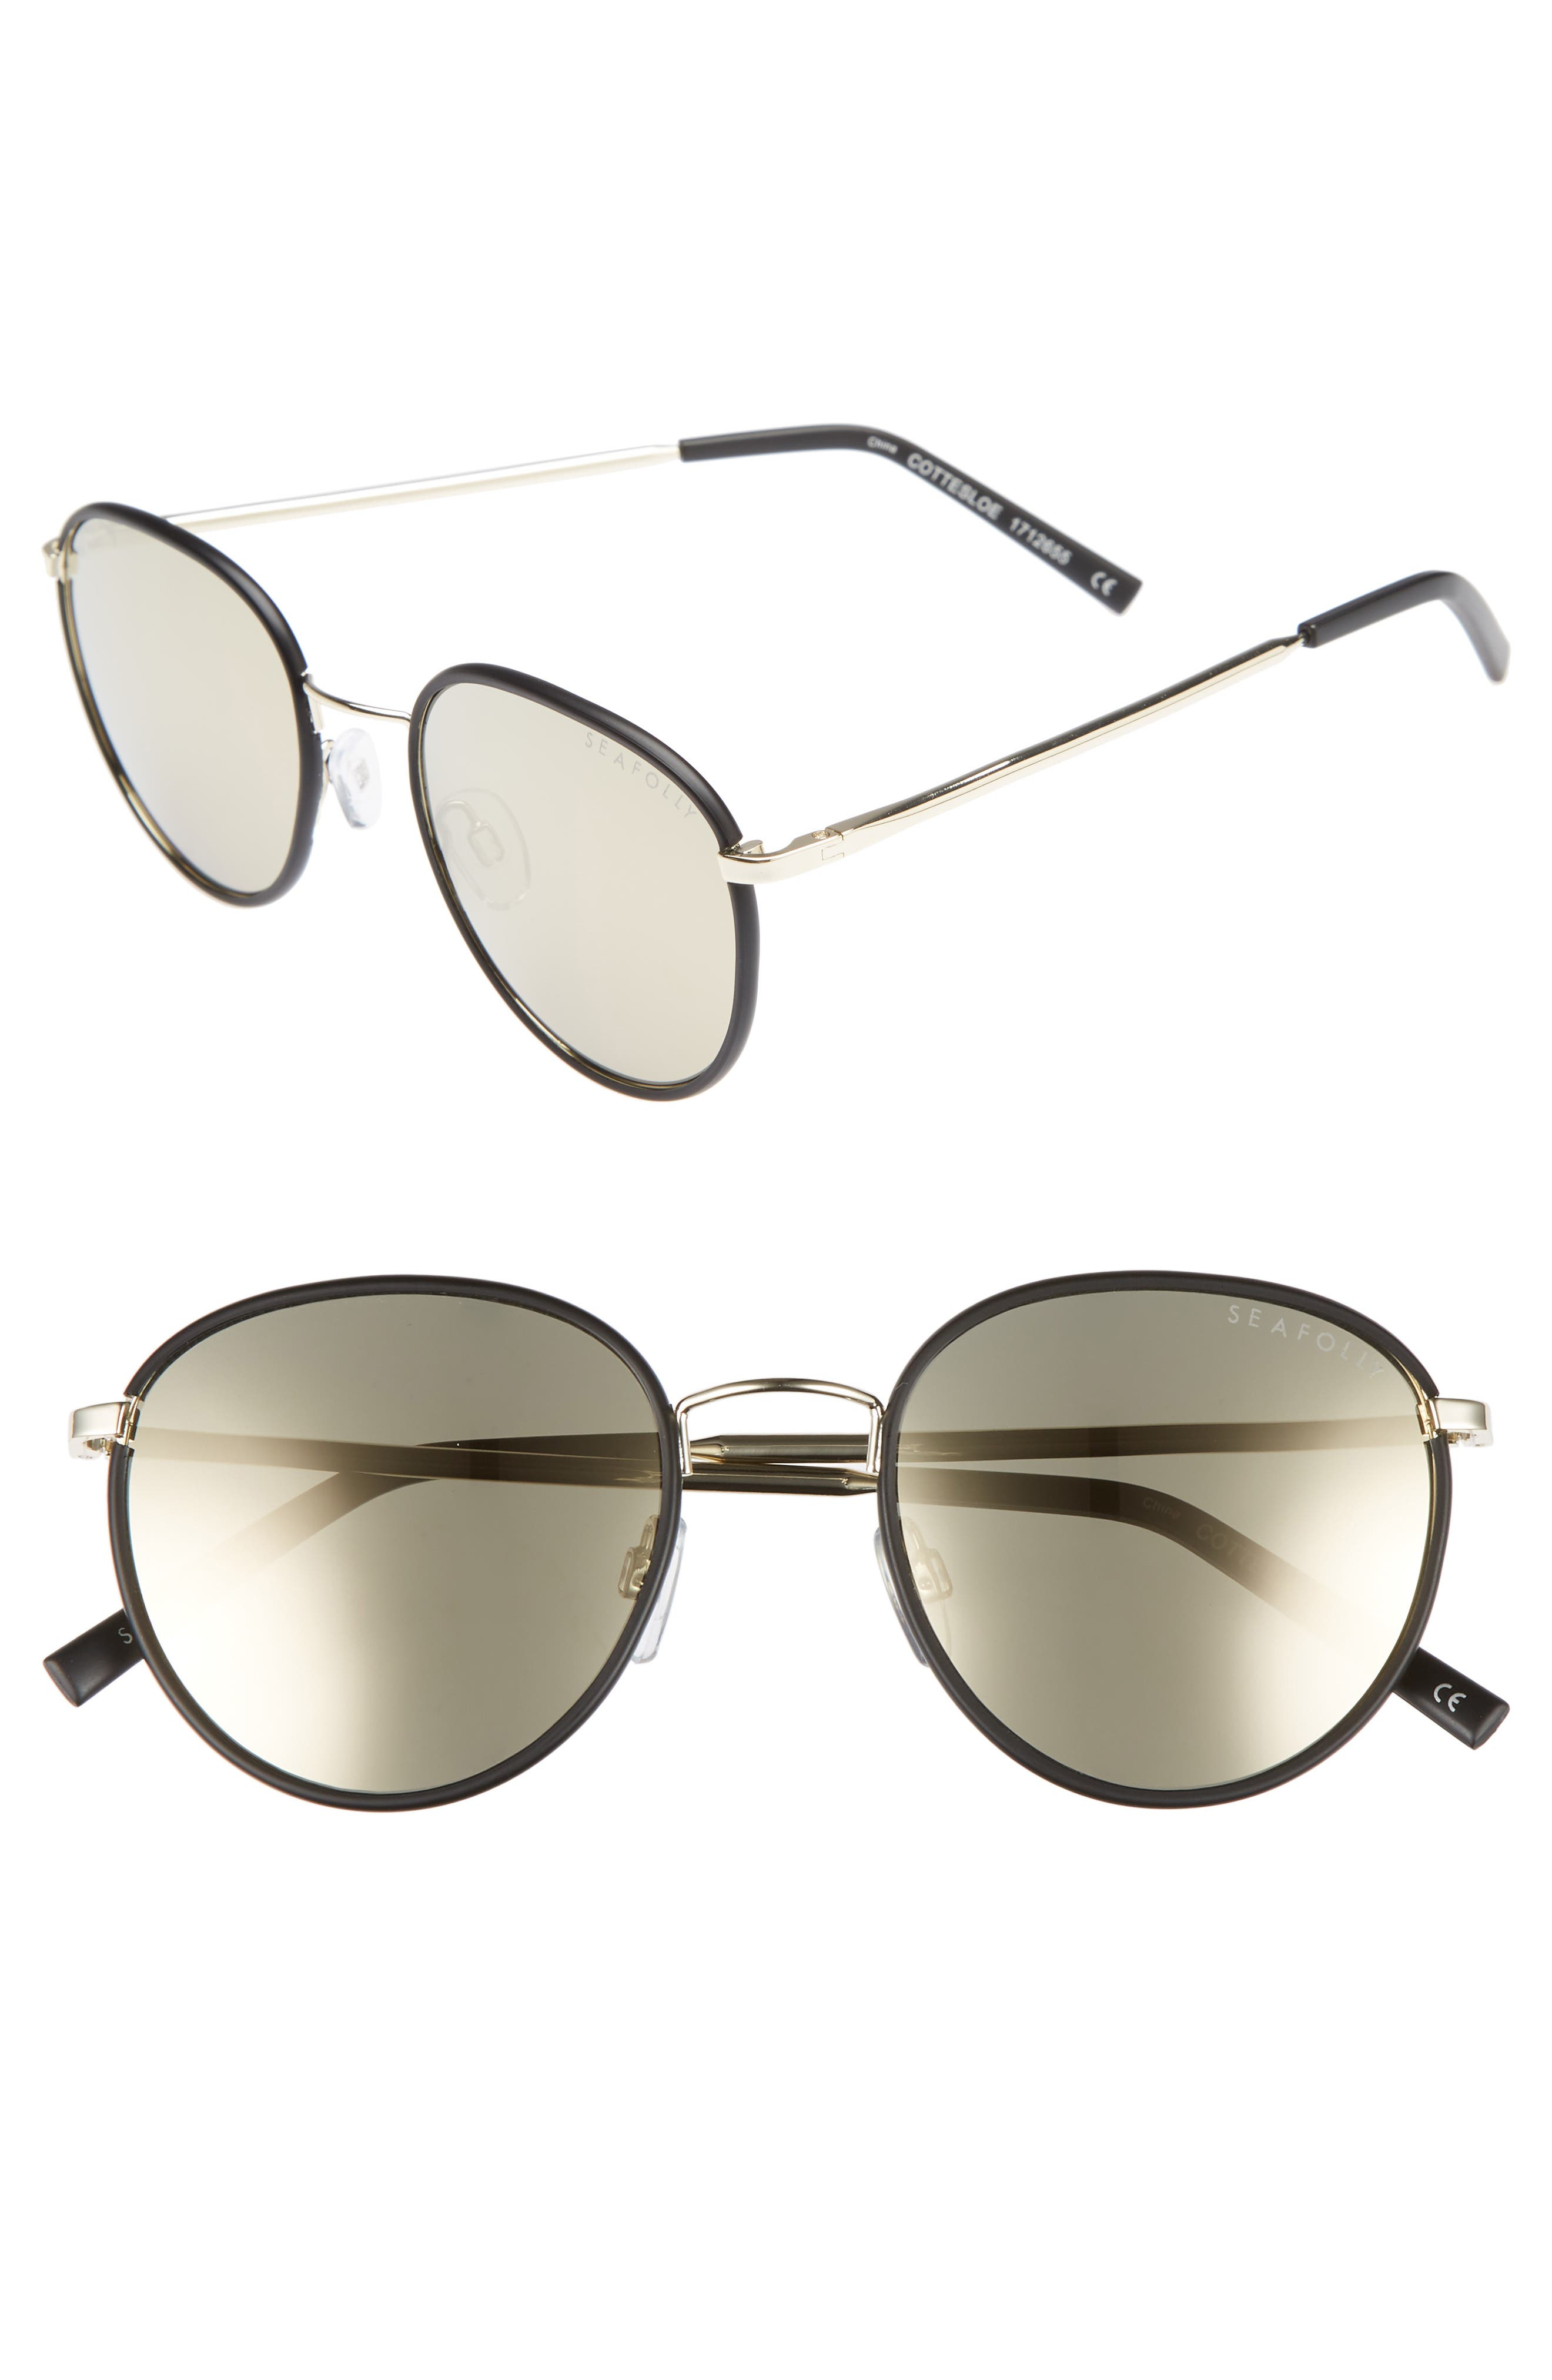 Cottesloe 51mm Round Lens Sunglasses,                         Main,                         color, 001